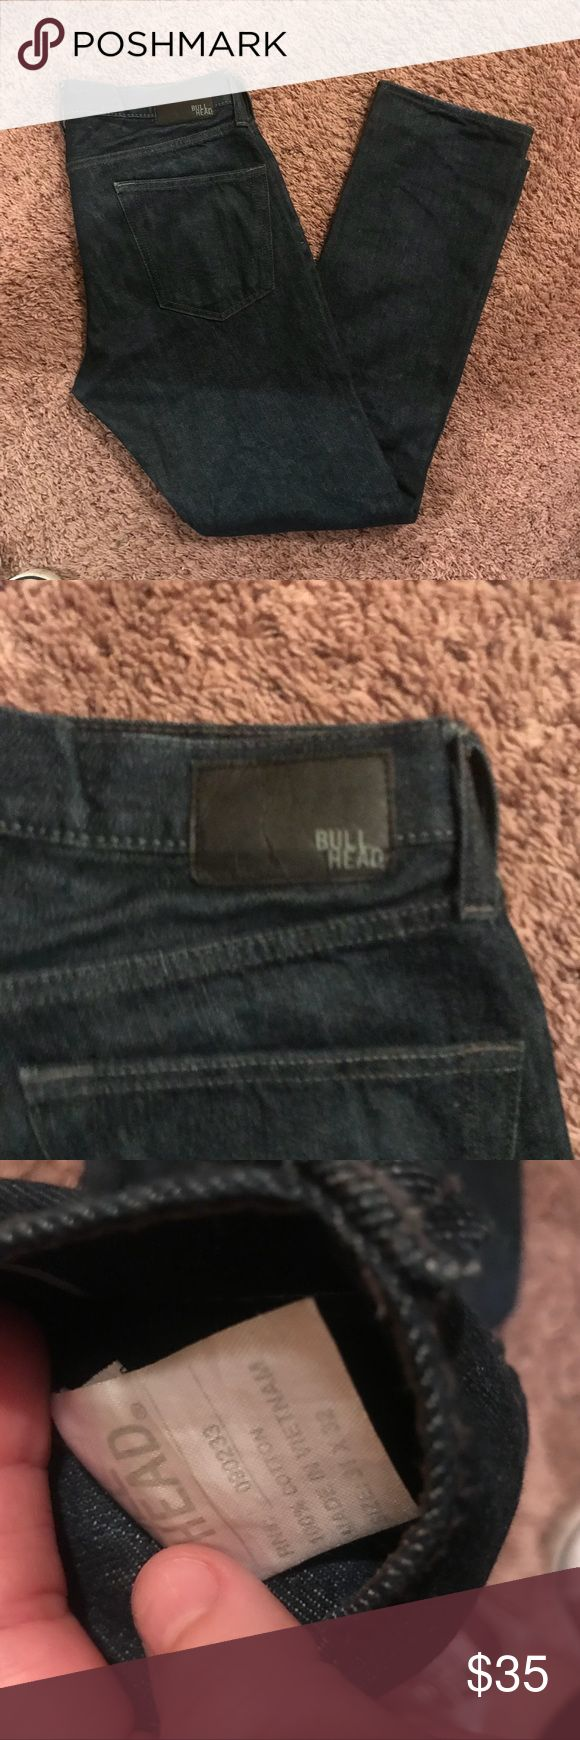 BullHead Mens Jeans Great gently used dark blue jeans condition 31x32 size, no flaws  Tags # fashion nova, brandy melville, abercrombie & fitch, sephora, American eagle, rag, Michael kors, Rachael roy, h&m, anthropologie, the north face, misguided, free people, j crew, urban outfitters, for love and lemons, lululemon, Adidas, Nike, puma, hollister, zara, rag and bone, guess, Nordstrom, Windsor, Naked, PINK, ninewest Bullhead Jeans Slim Straight